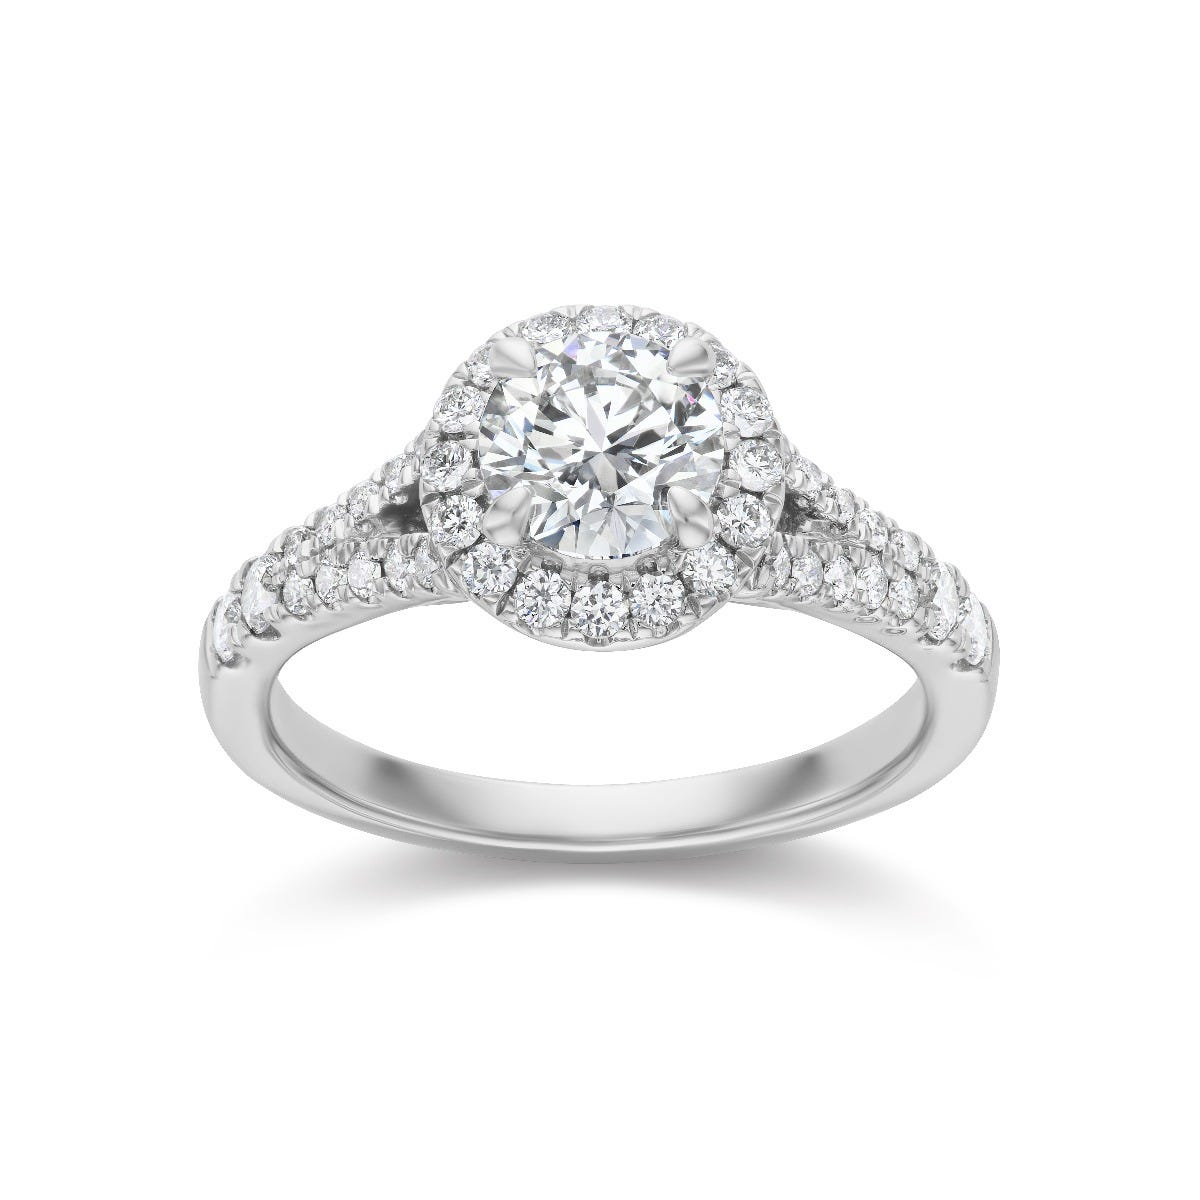 Lab Grown 1 1/2ct. Diamond Split Shank Engagement Ring in 14k White Gold